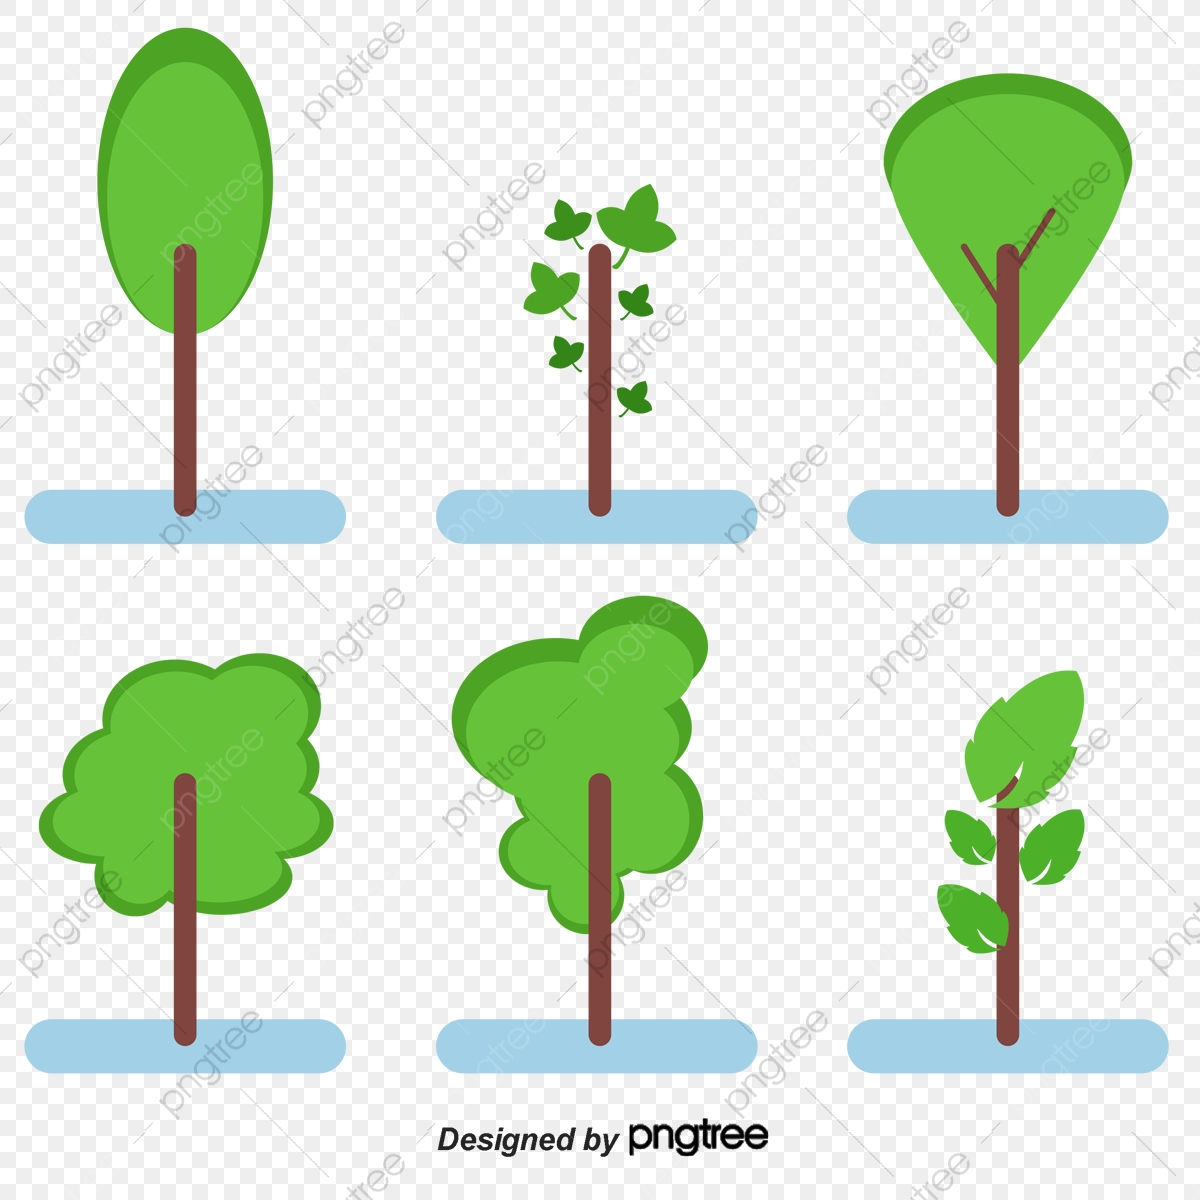 mangrove png vector psd and clipart with transparent background for free download pngtree https pngtree com freepng vector mangrove 389412 html